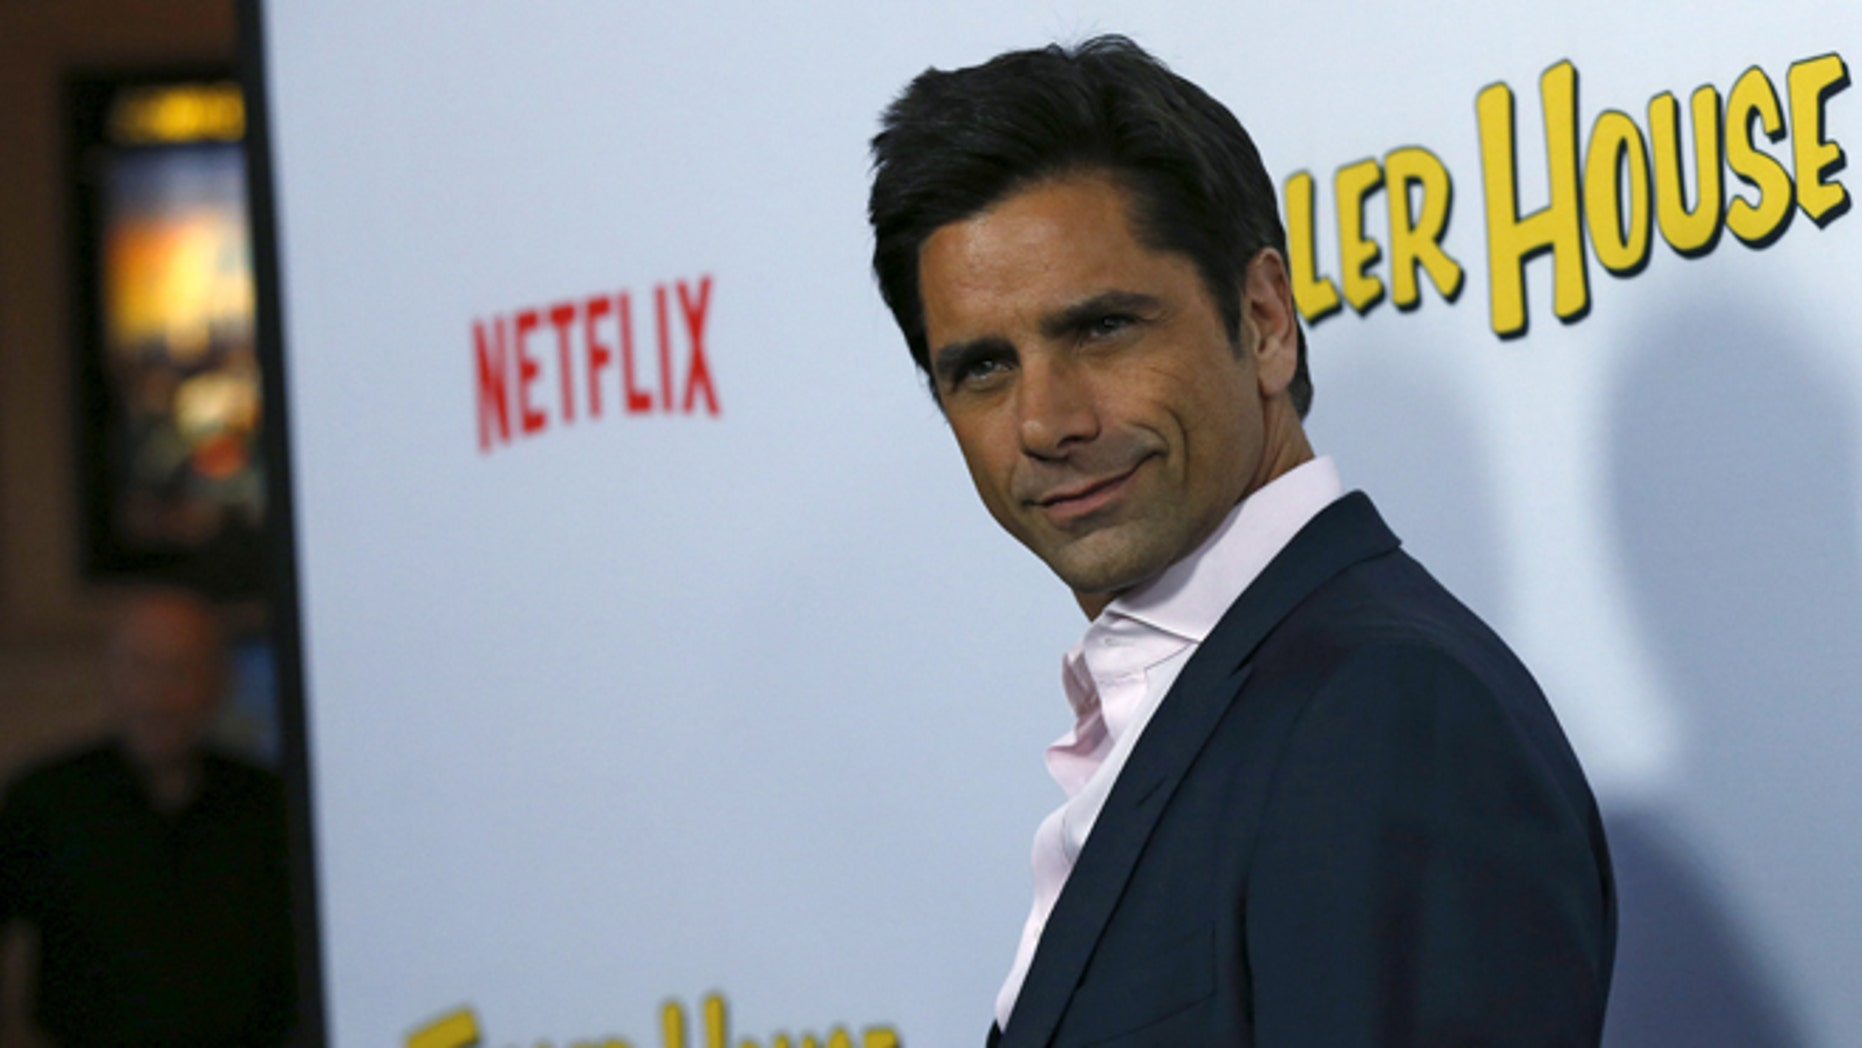 """February 16, 2016. John Stamos poses at the premiere for the Netflix television series """"Fuller House"""" in Los Angeles."""